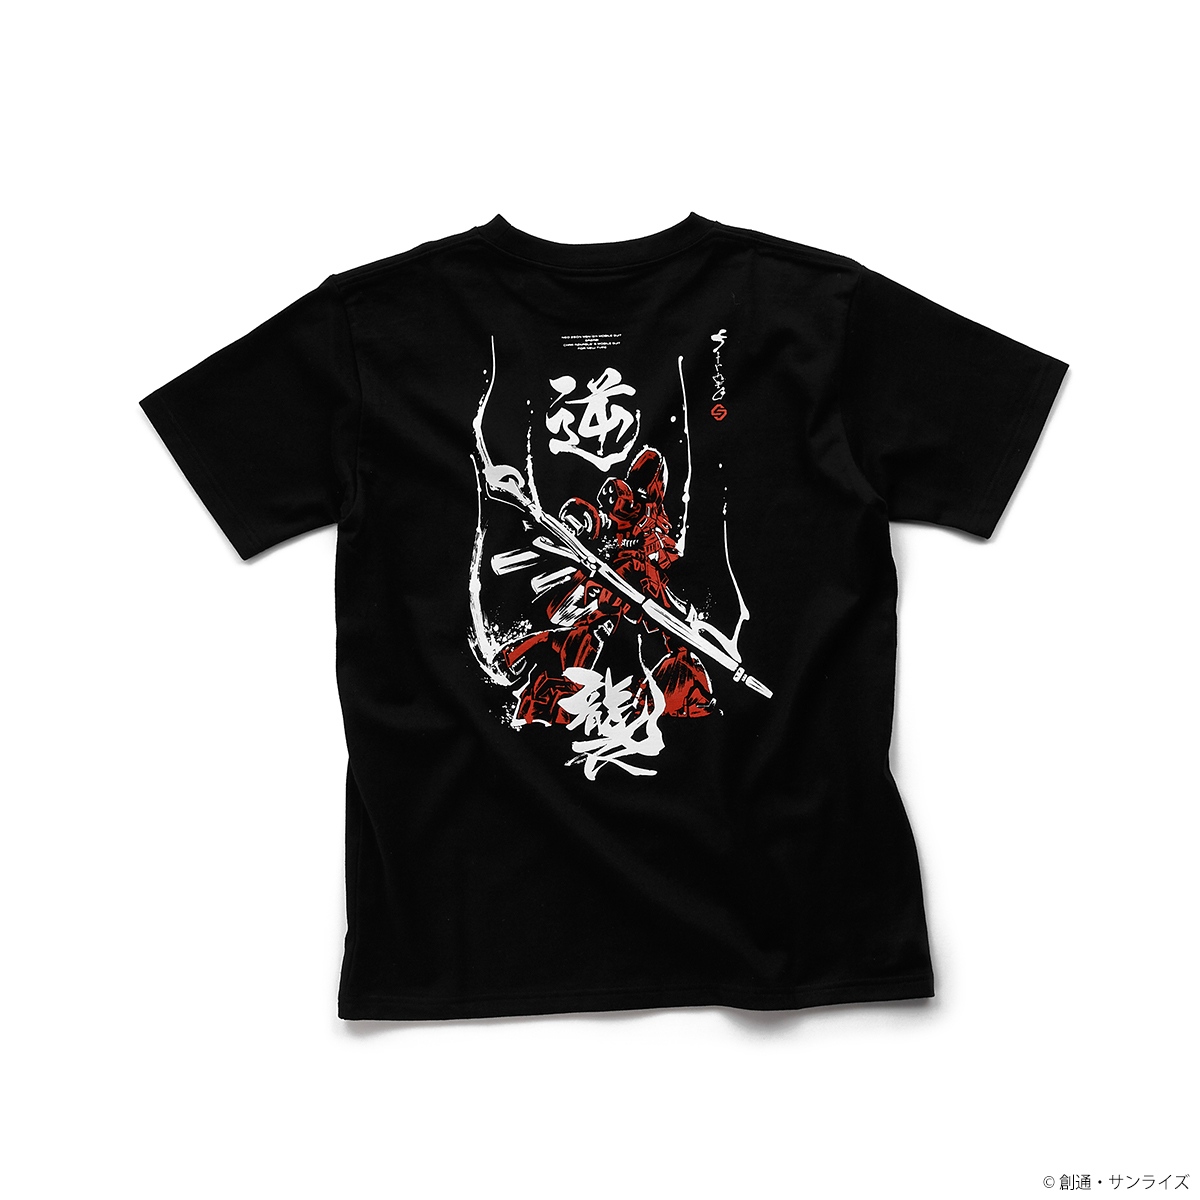 Sazabi T-shirt—Mobile Suit Gundam: Char's Counterattack/STRICT-G JAPAN Collaboration